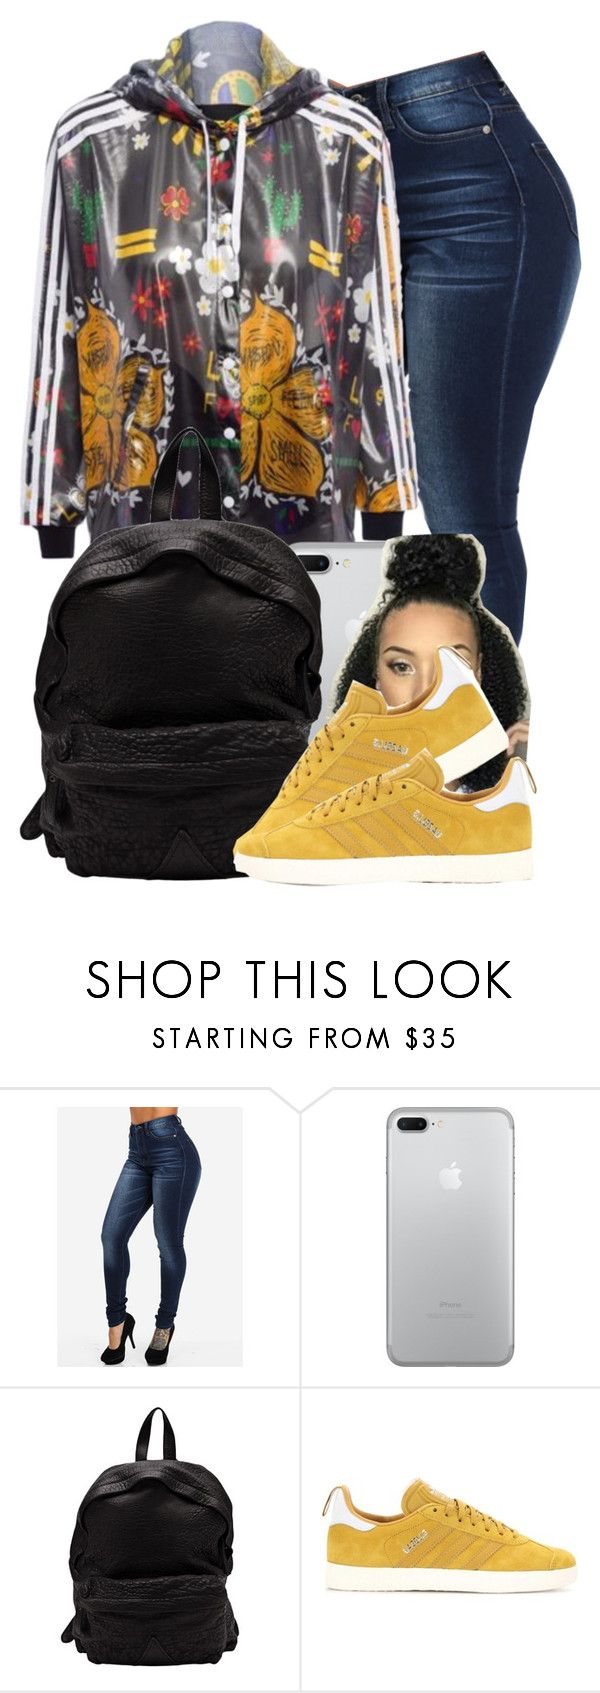 """Swang"" by danimack03 ❤ liked on Polyvore featuring Officine Creative and adidas Originals"